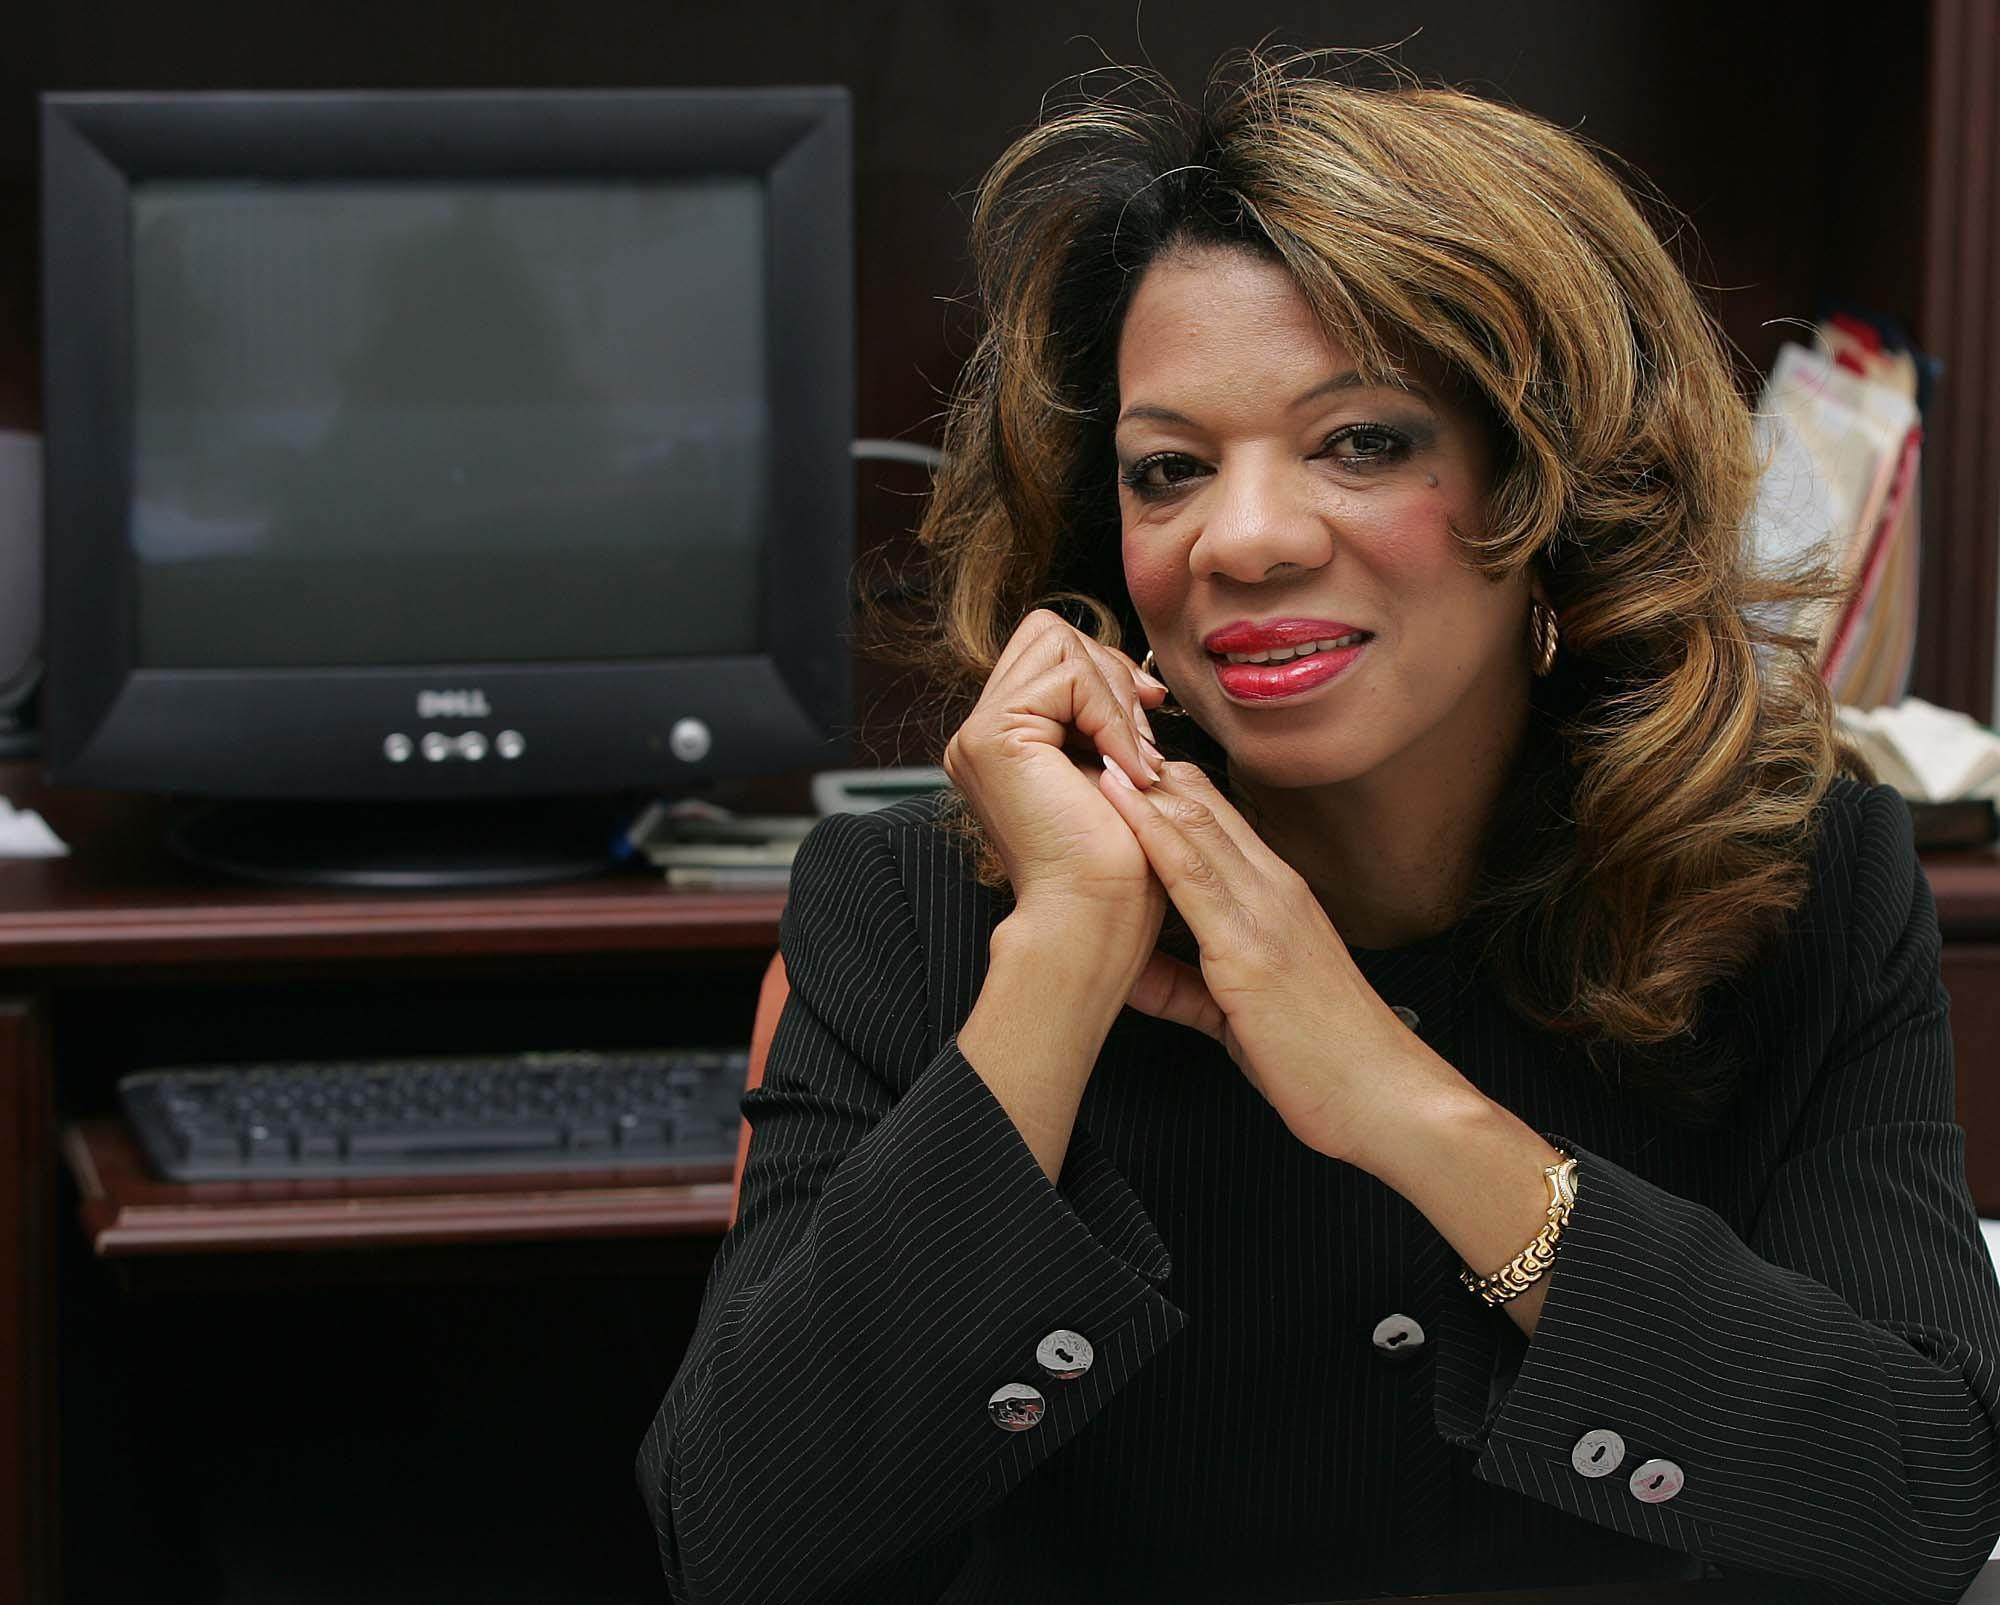 Palm Beach County Mayor Priscilla Taylor proposed holding the Mayor's Ball, scheduled for March 8, that will be a $250-per-ticket, black tie fundraiser for the homeless.